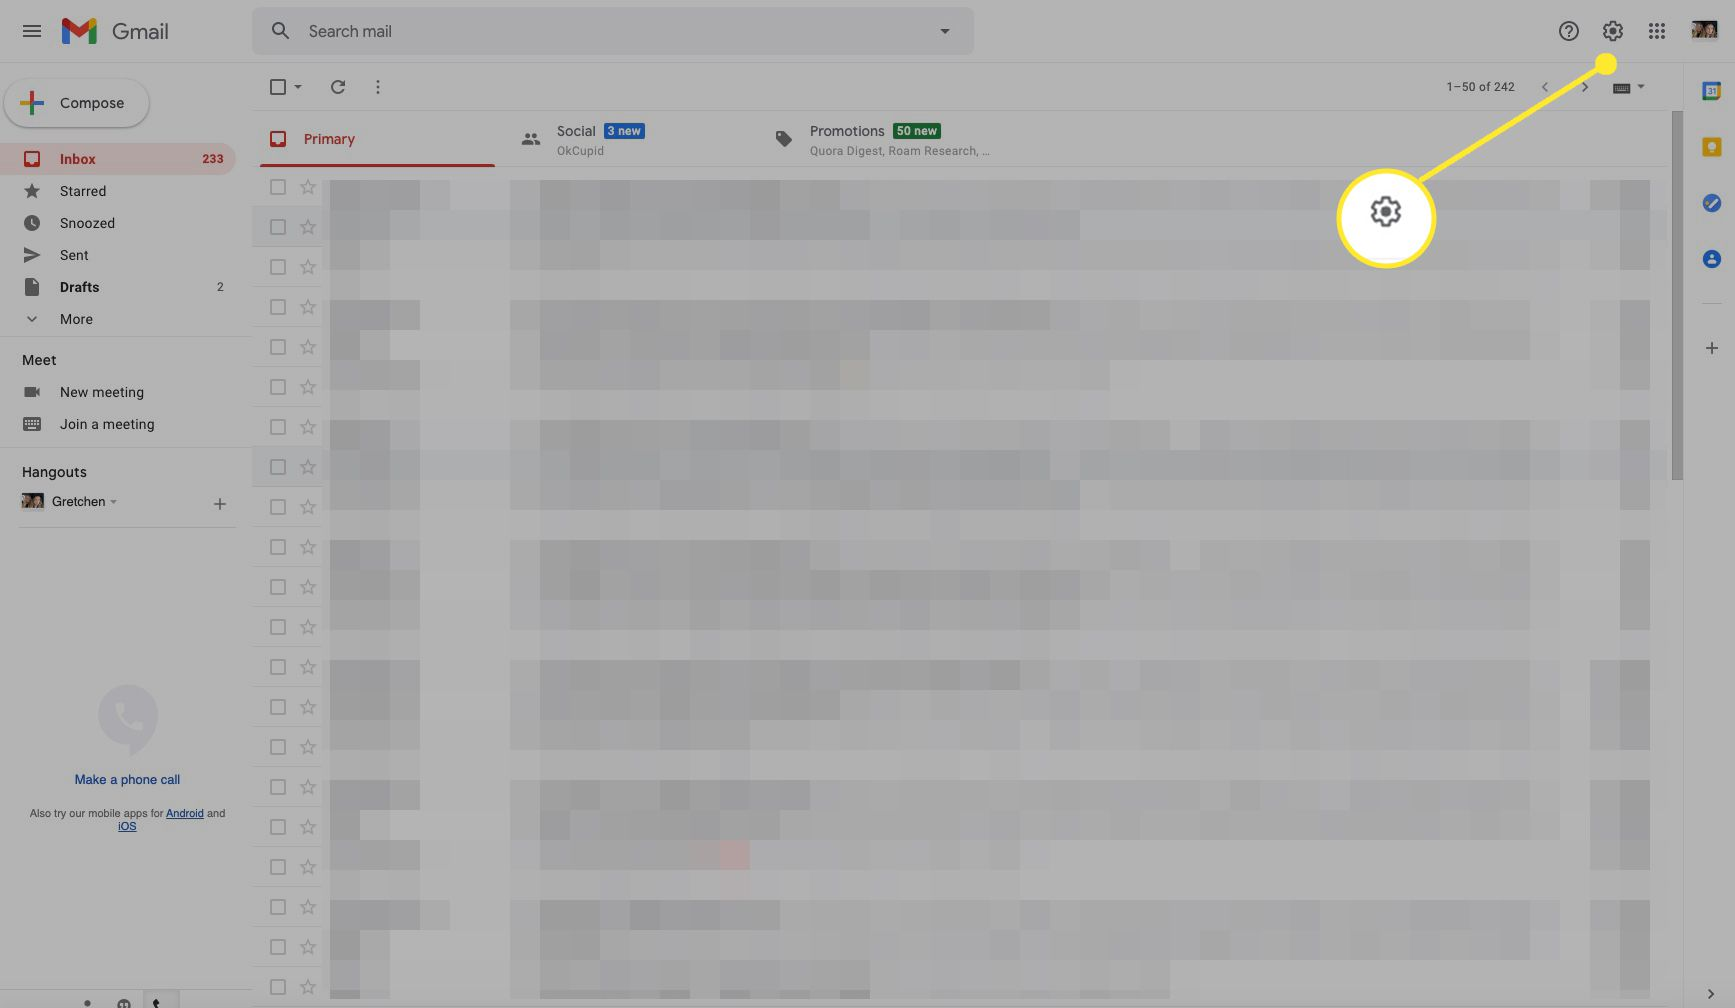 Gmail inbox screen with Settings gear highlighted